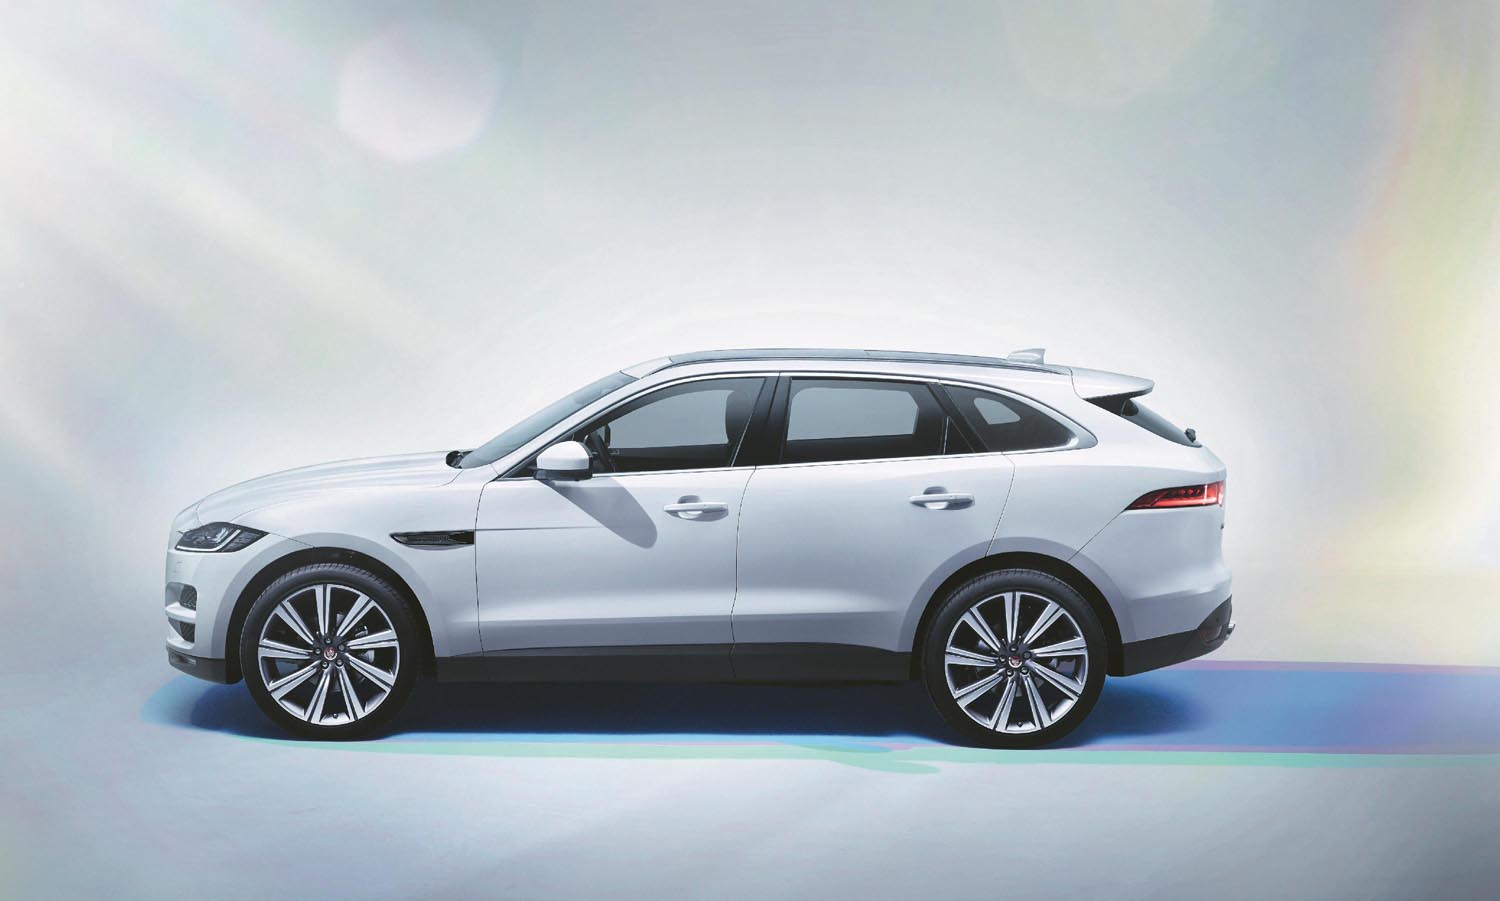 The Jaguar F-Pace, awarded world's best vehicle in 2017